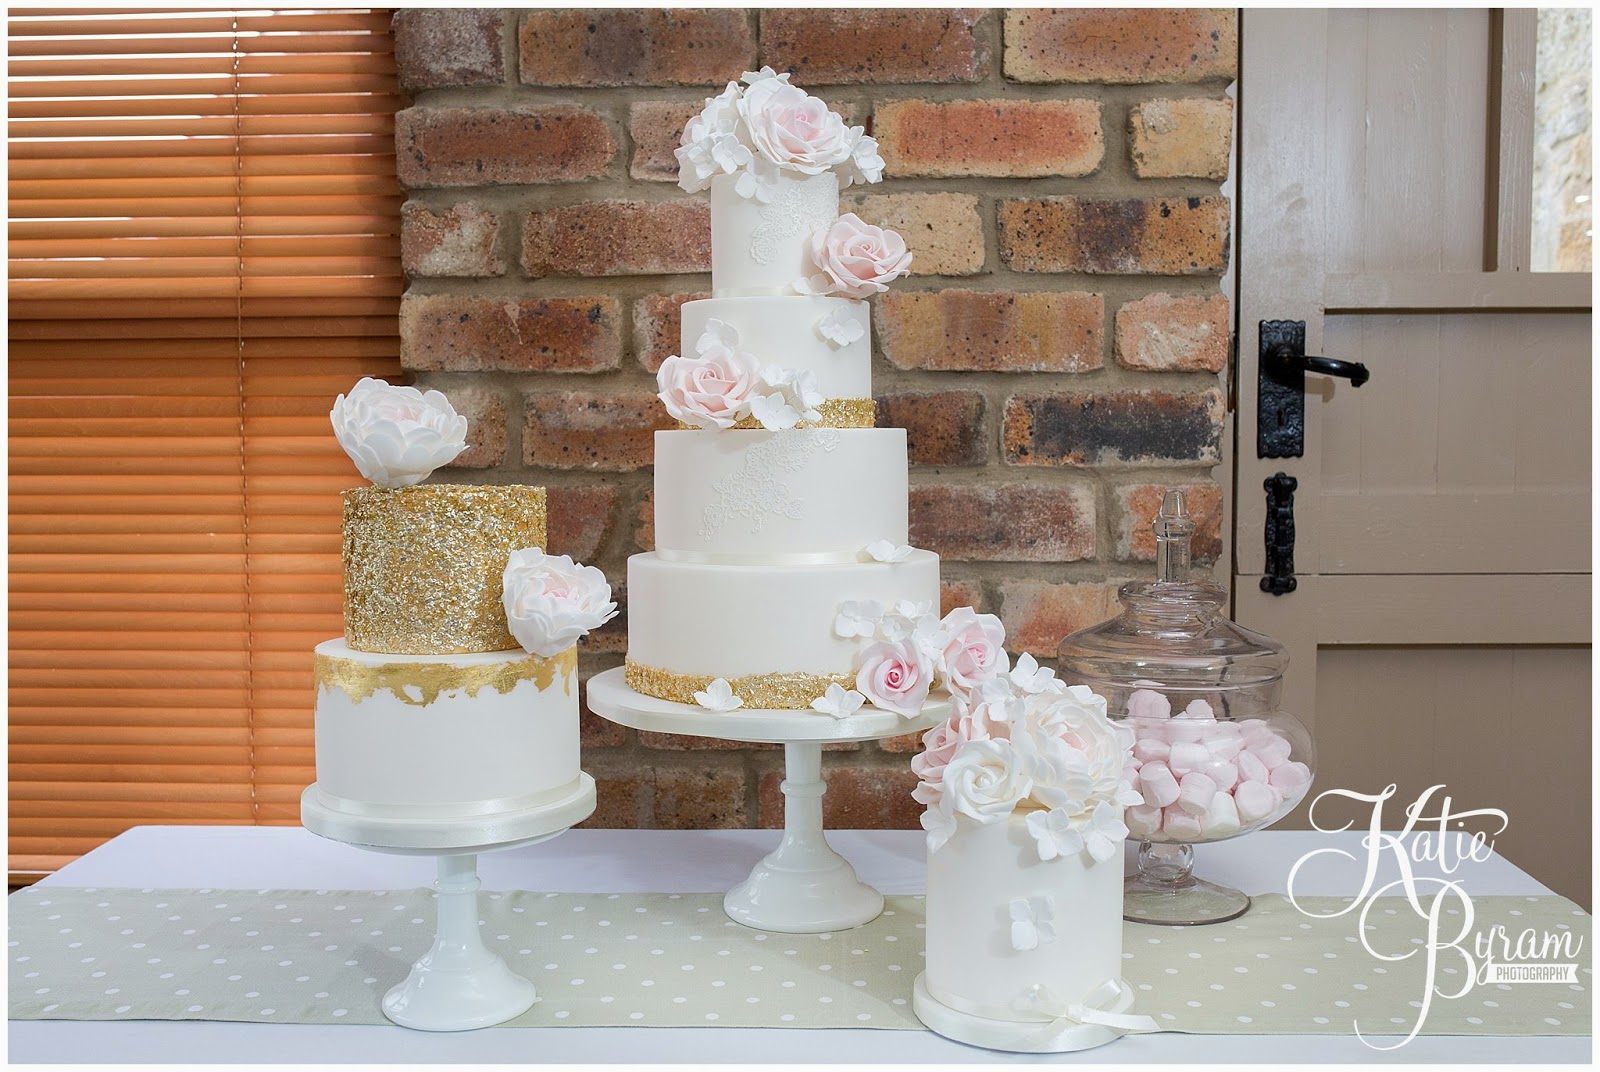 dessert table, the master cakesmith, dawn cake maker, newton hall, ellingham hall, alnwick garden, northumberland wedding cake, northumberland wedding, katie byram photography